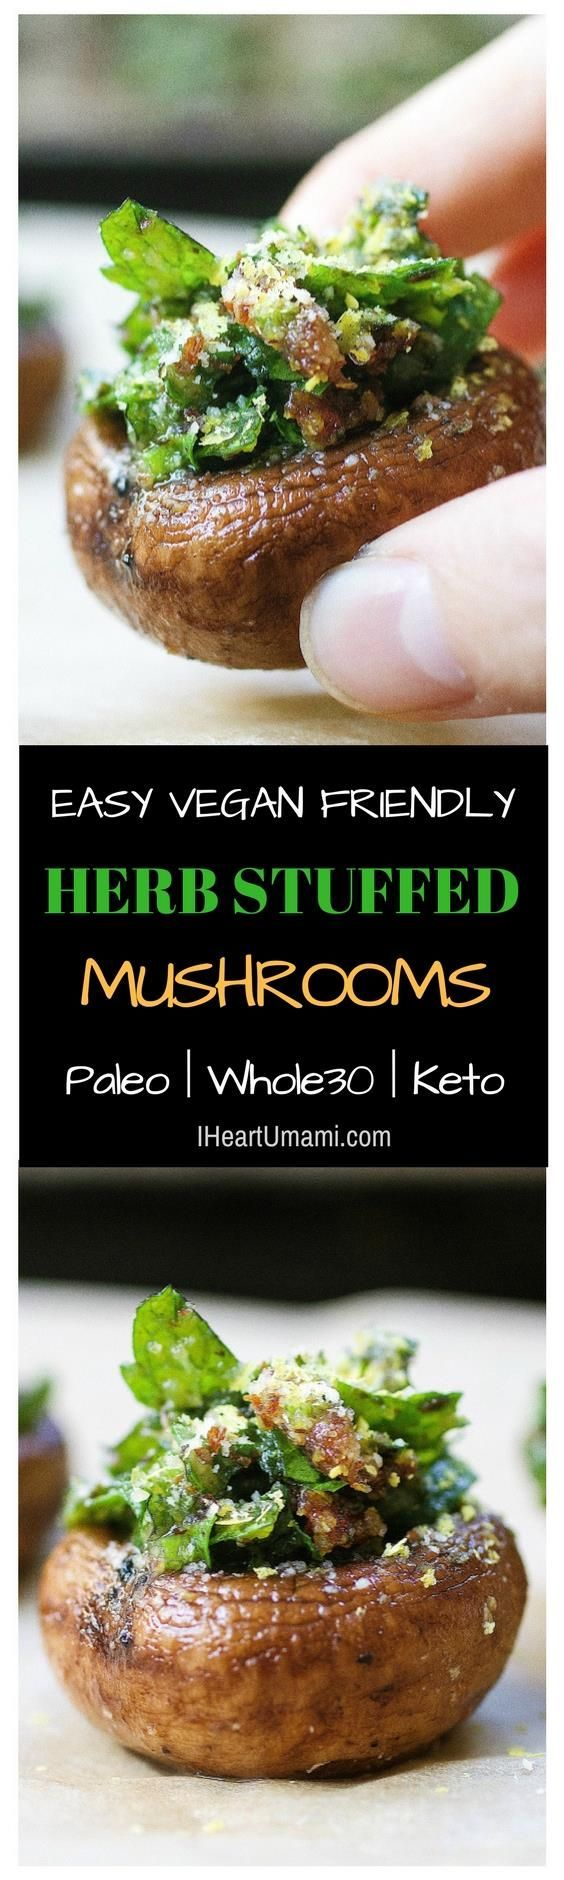 """Easy and """"cheesy"""" Herb Stuffed Mushrooms that are gluten dairy free and vegan friendly, packed with fresh parsley, mint, and sun dried tomatoes. Perfect finger party food. Follow the link to make this simple and super delicious recipe + ton more easy make"""